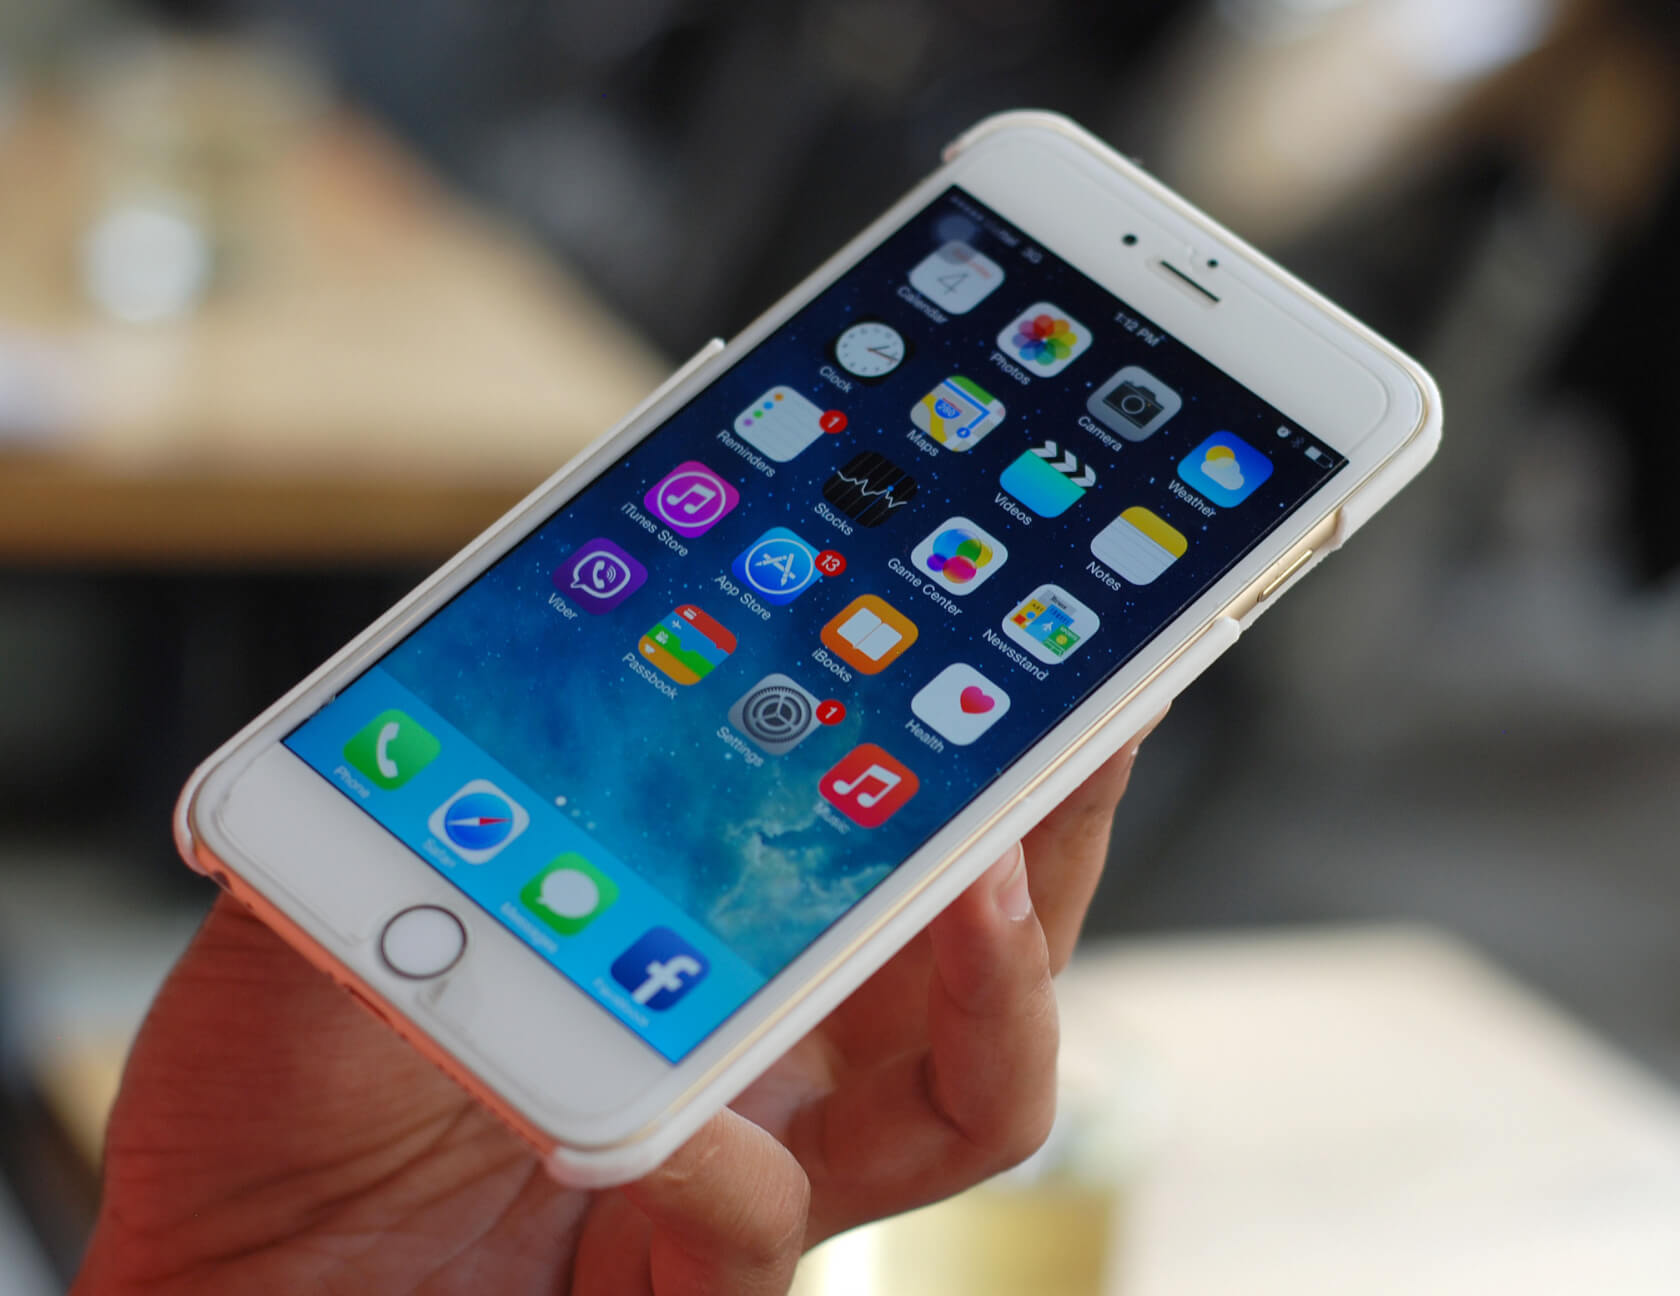 iPhone 6 Plus owners needing repairs may qualify for a 6s Plus upgrade